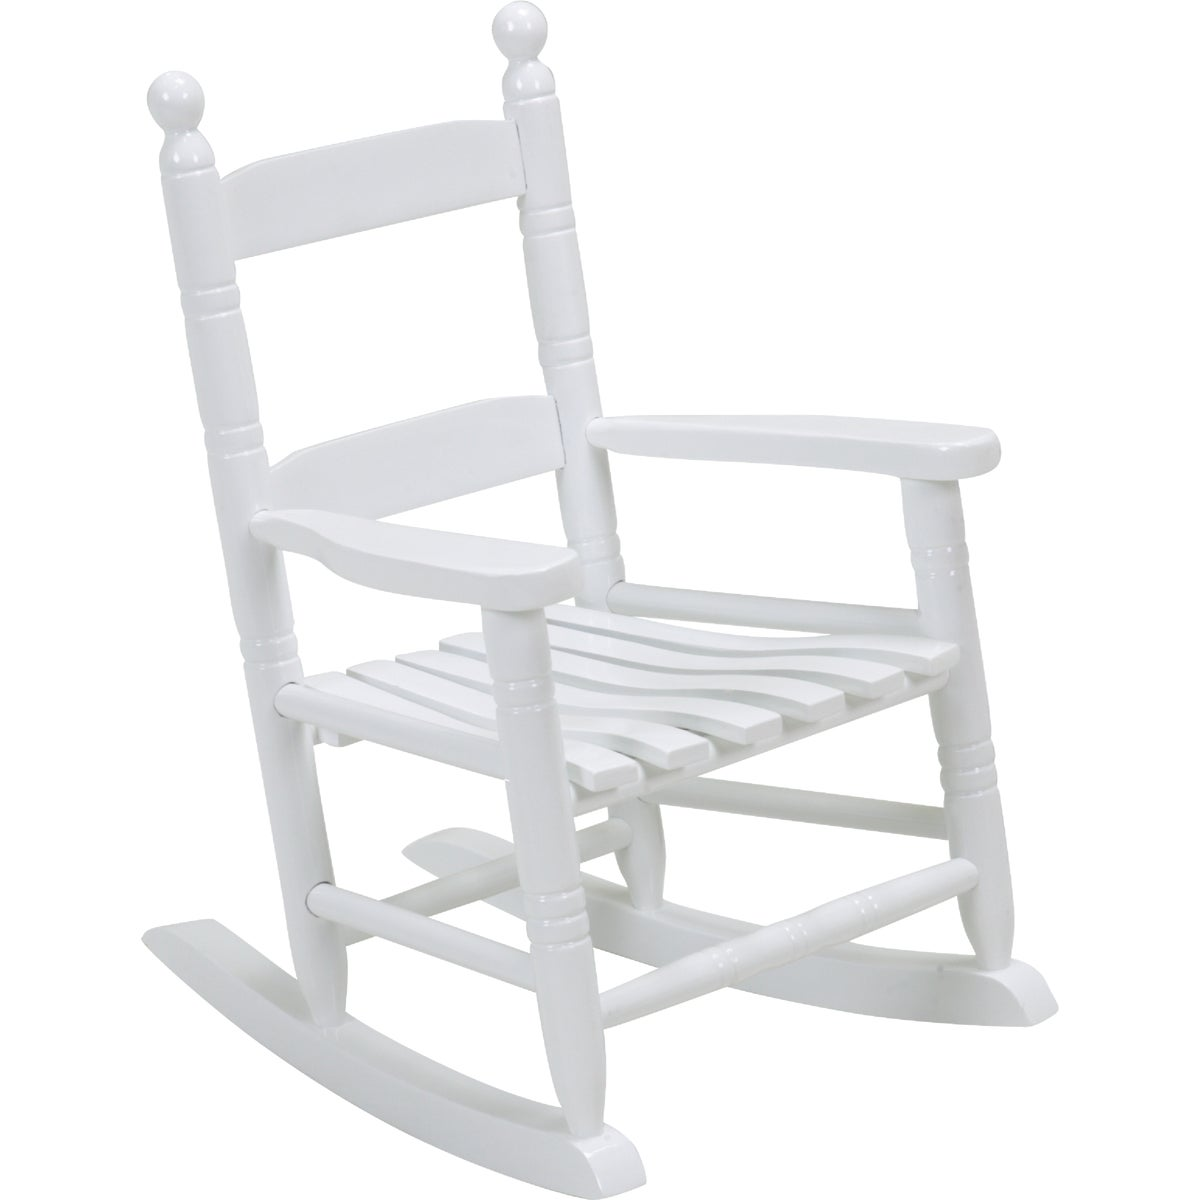 WHITE CHILD'S ROCKER - KN-10-W by Jackpost   Fuzhou